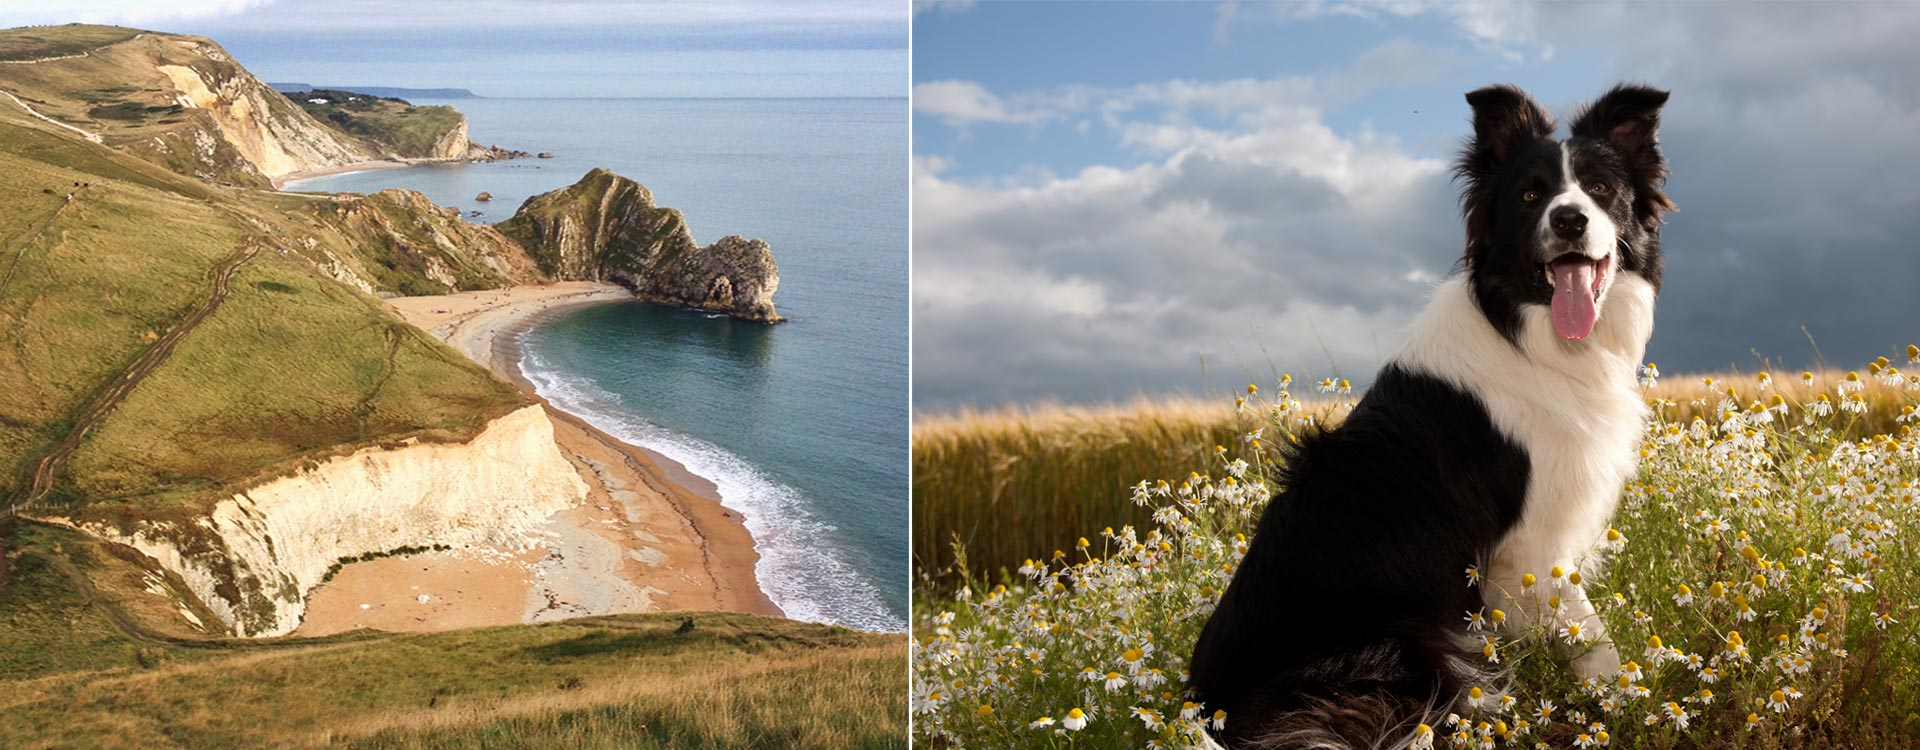 we welcome well behaved pet owners and their dogs to enjoy the walking trails along the Jurassic coast paths